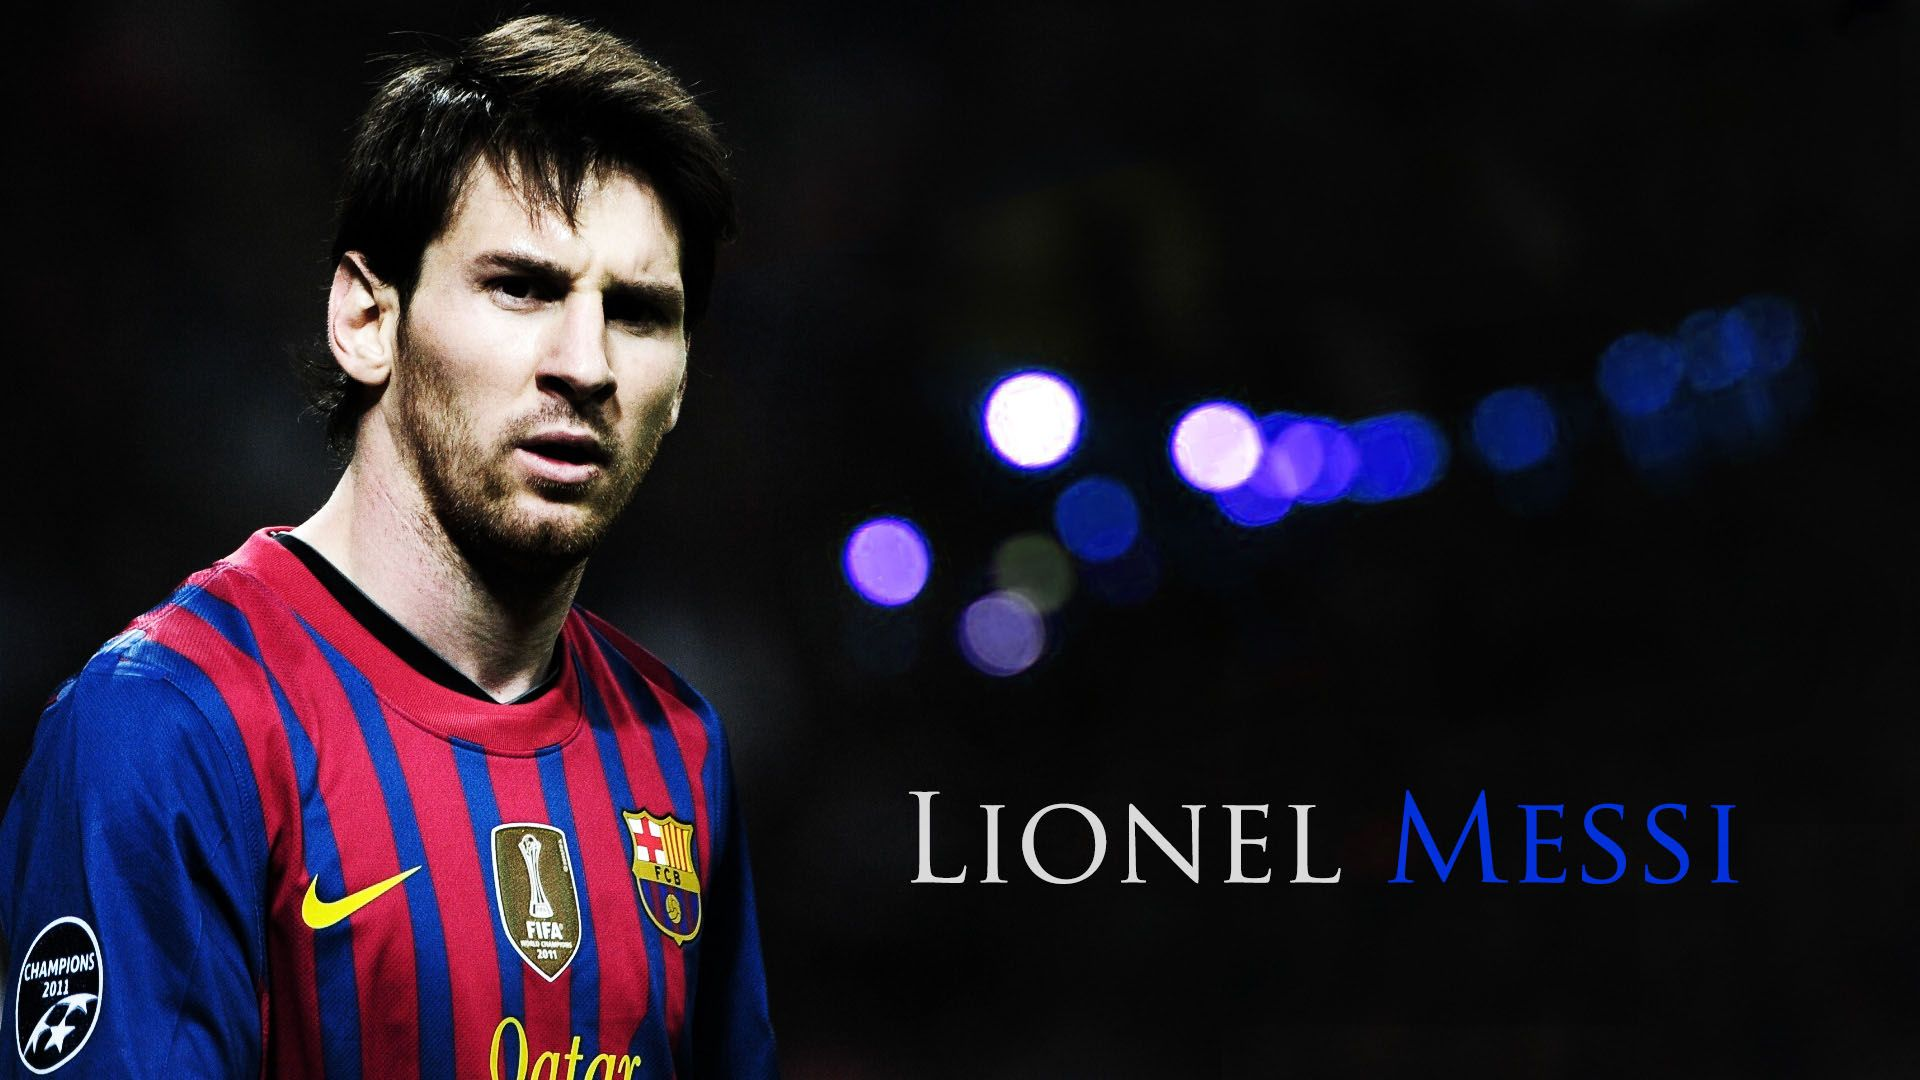 lionel messi wallpaper hd download - free download latest lionel